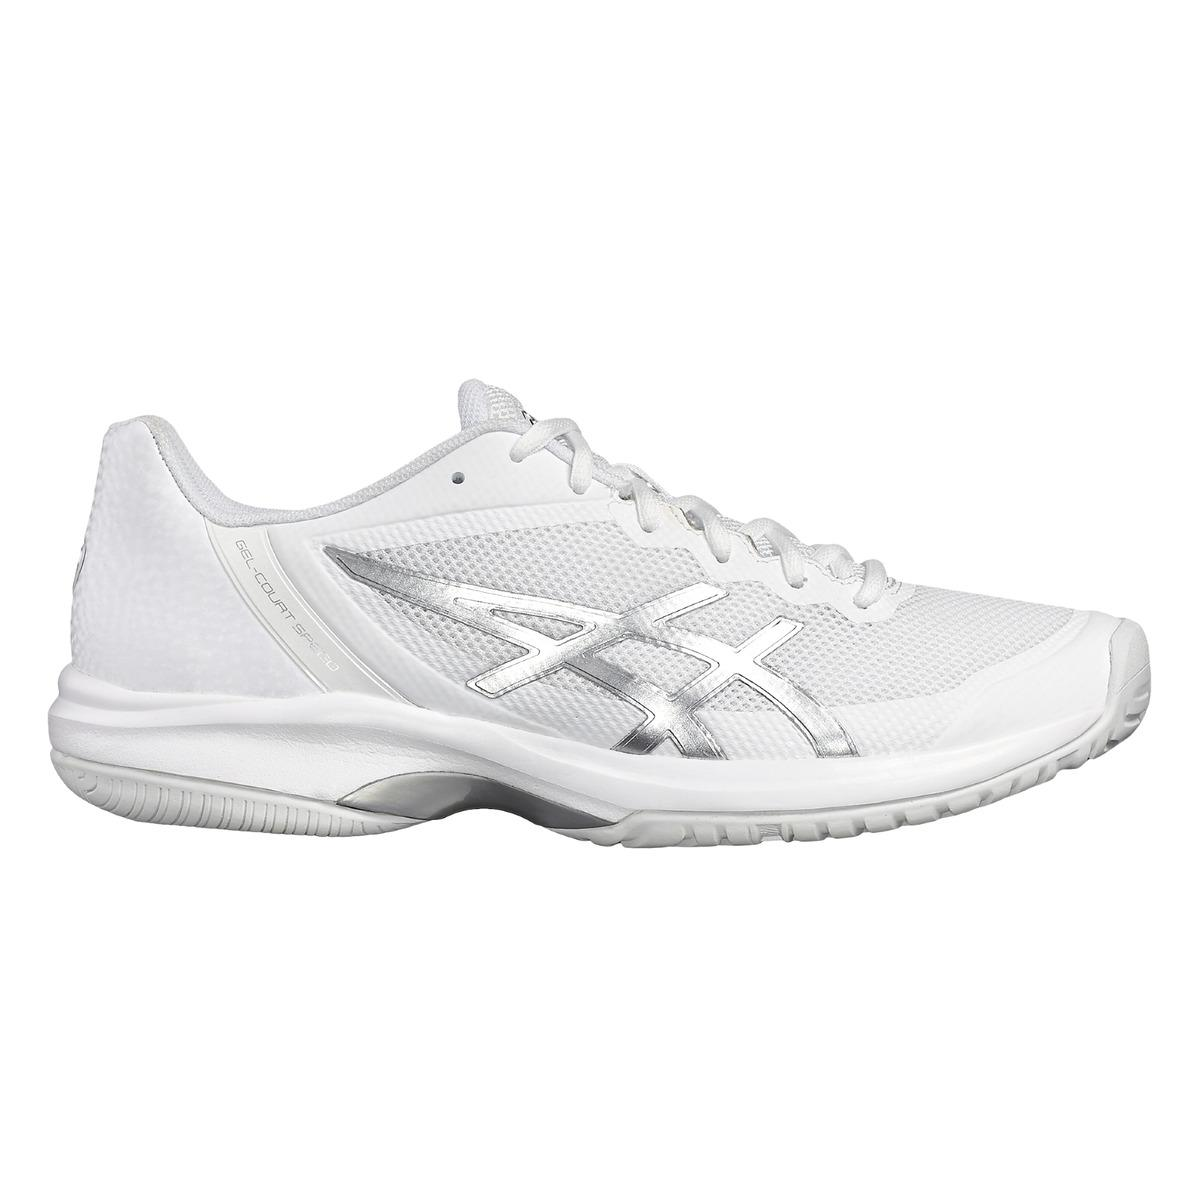 designer fashion c9c67 1aa93 Lyst - Asics Gel-court Speed Tennispaddle Tennis Shoes in Wh